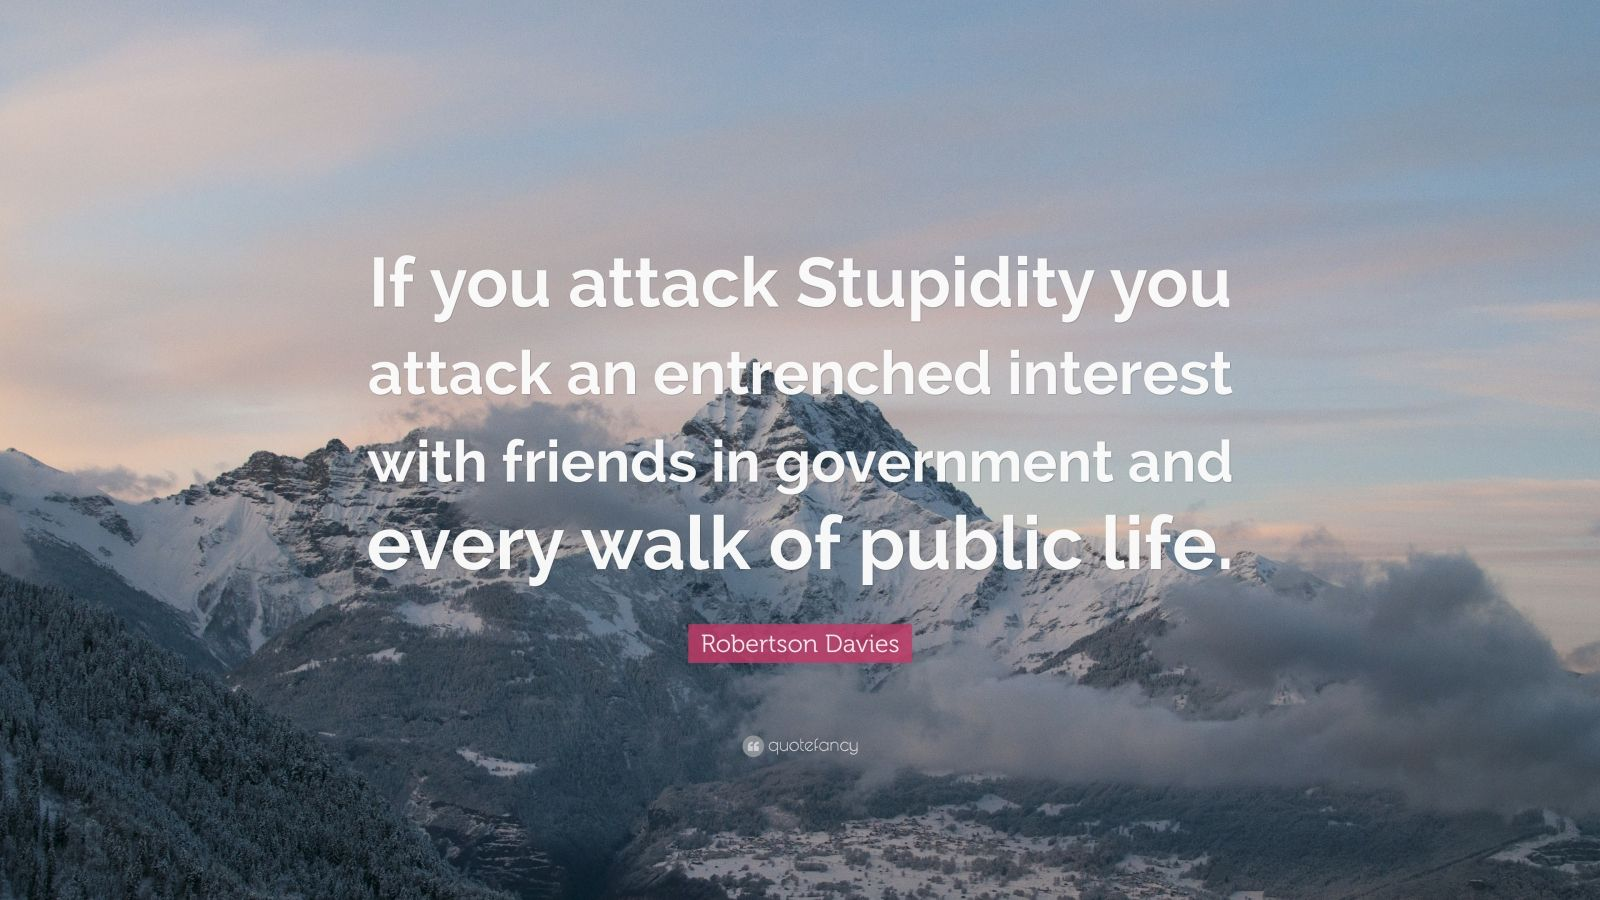 """Robertson Davies Quote: """"If you attack Stupidity you attack an entrenched interest with friends in government and every walk of public life."""""""